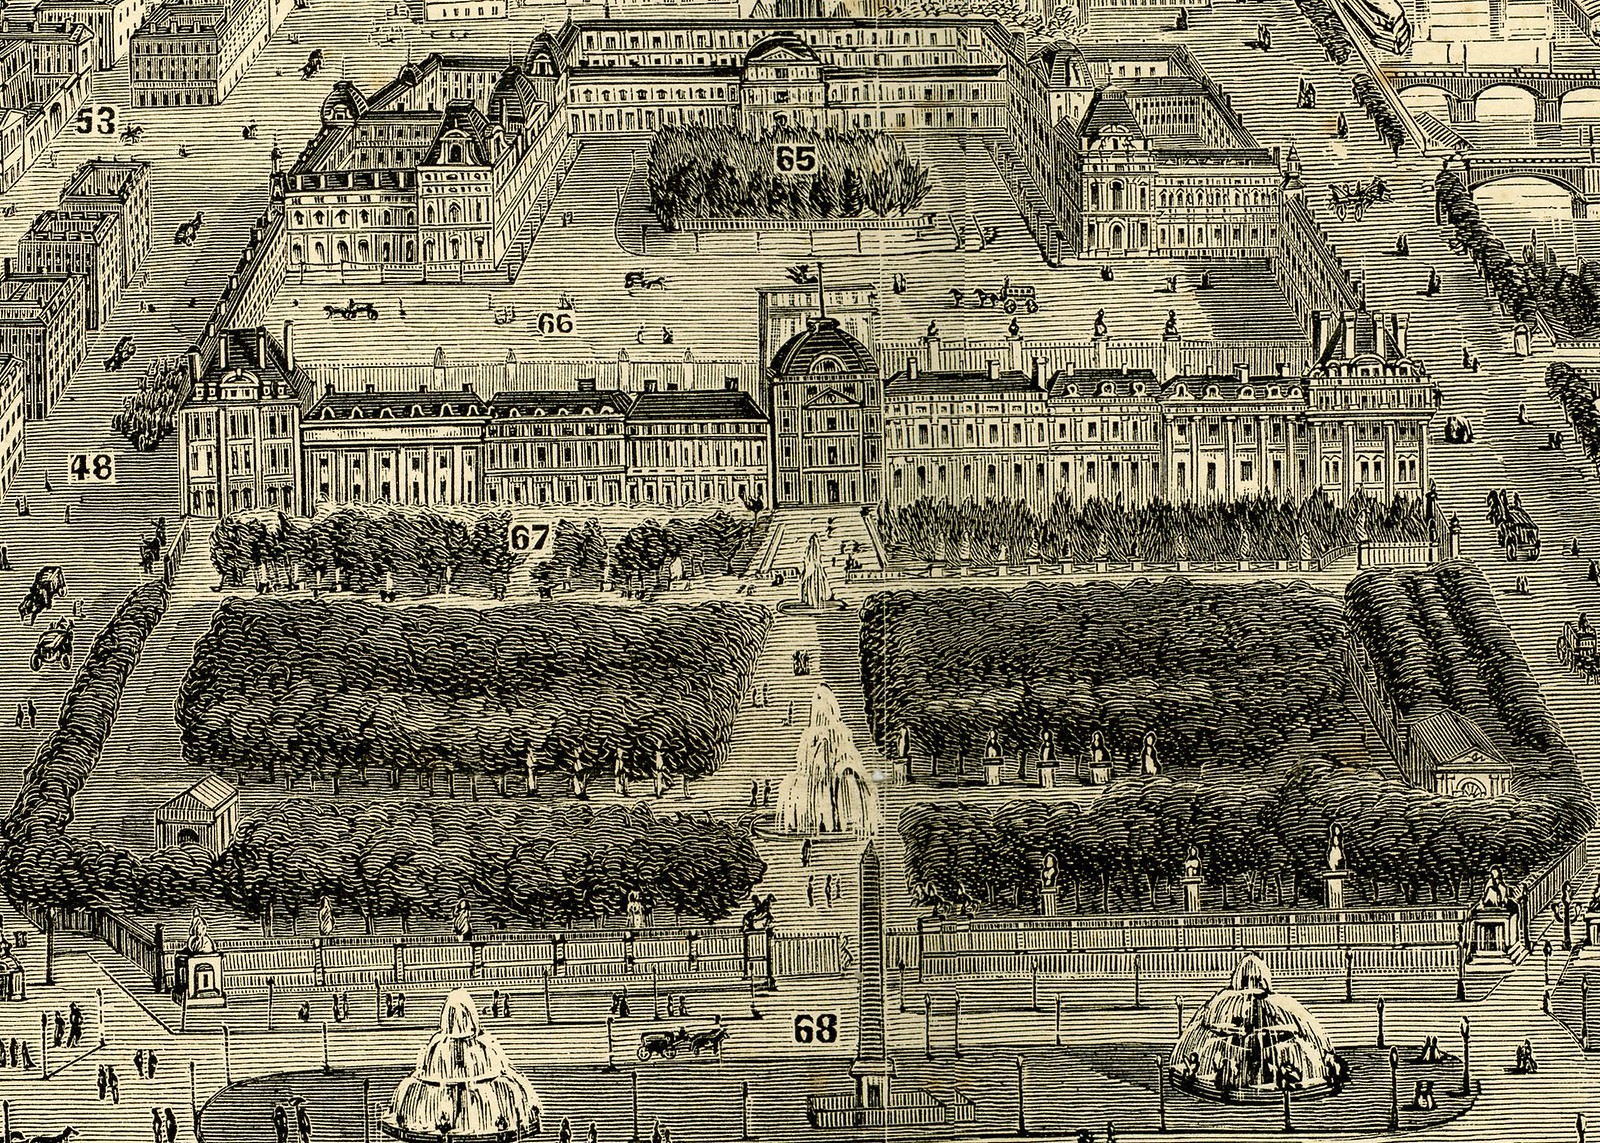 City of Paris - Louvre Crop